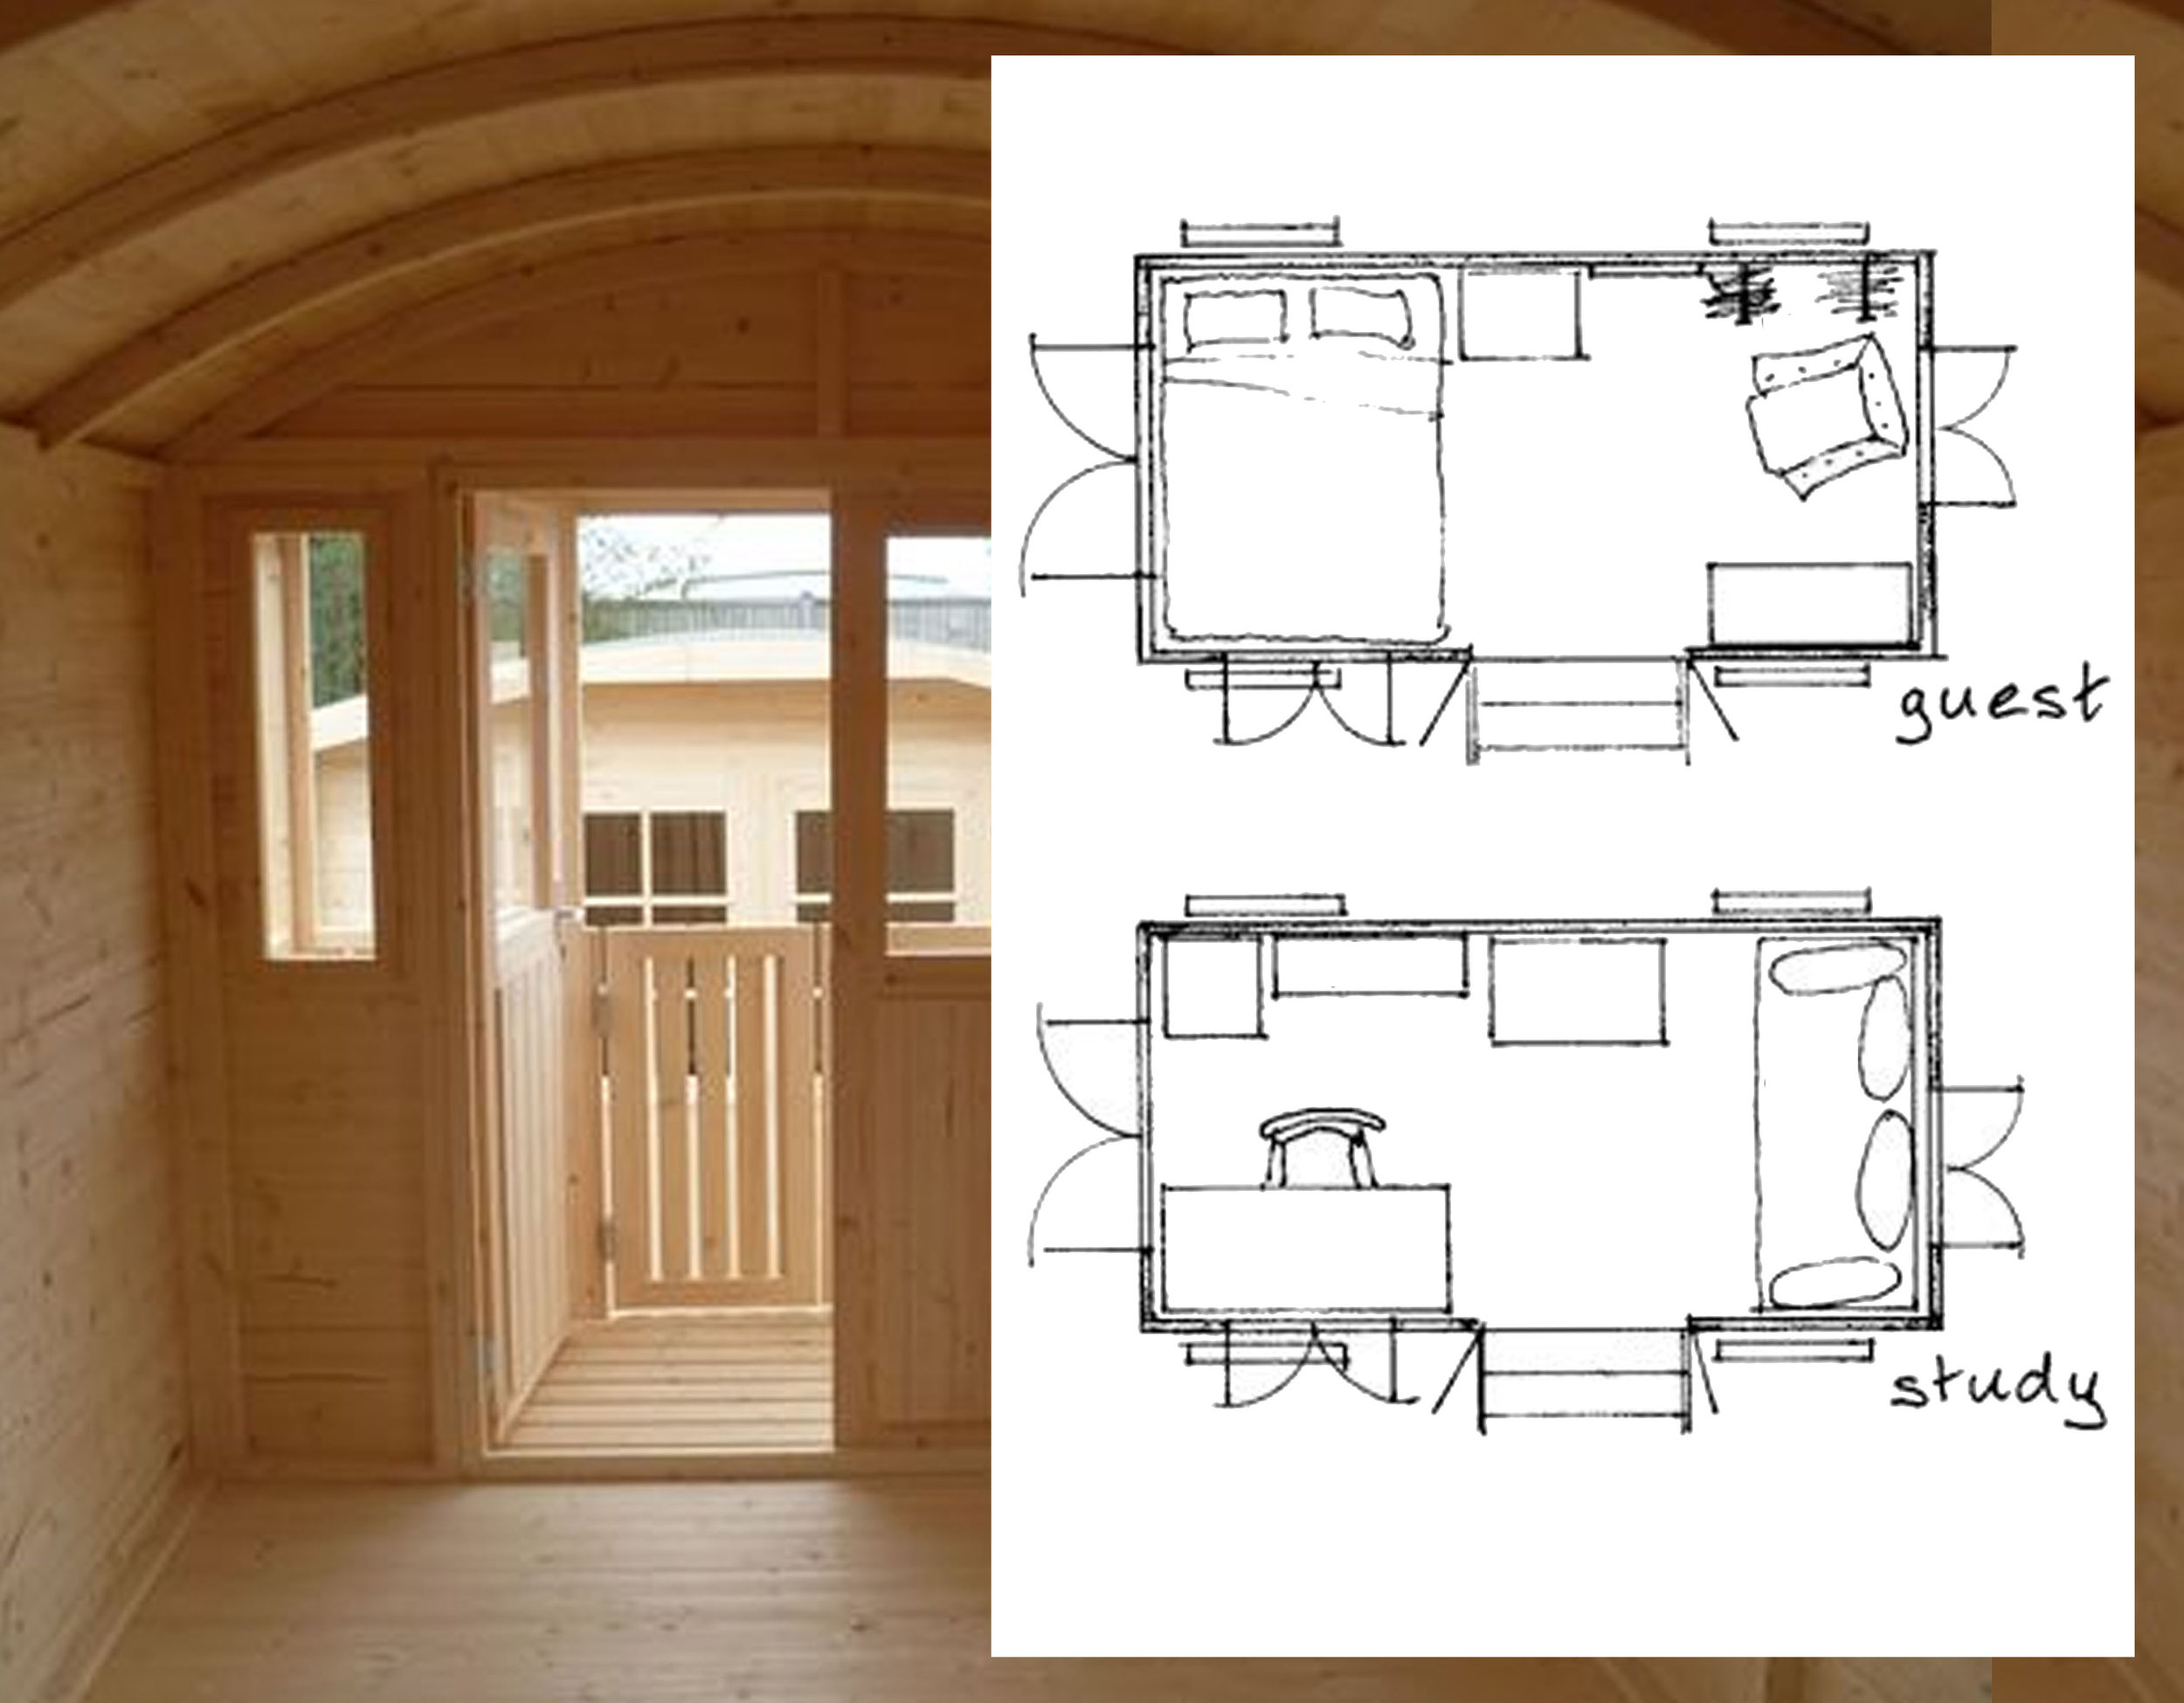 traditional wagon has approx. 2 x 4 m